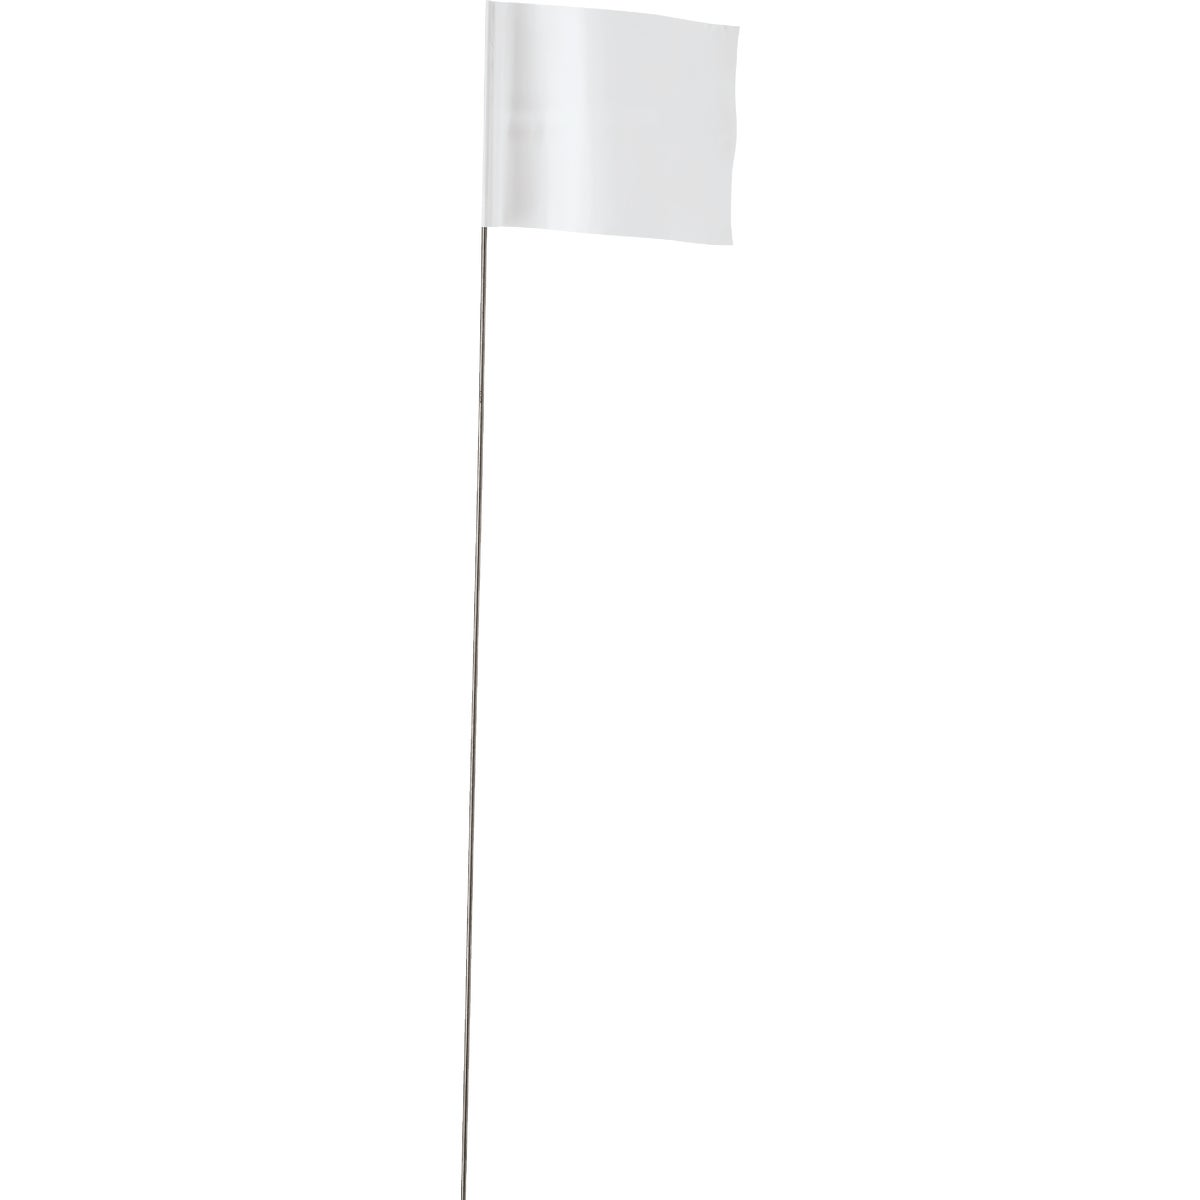 100PK WHITE FLAGS - 2034204 by Irwin Industr Tool